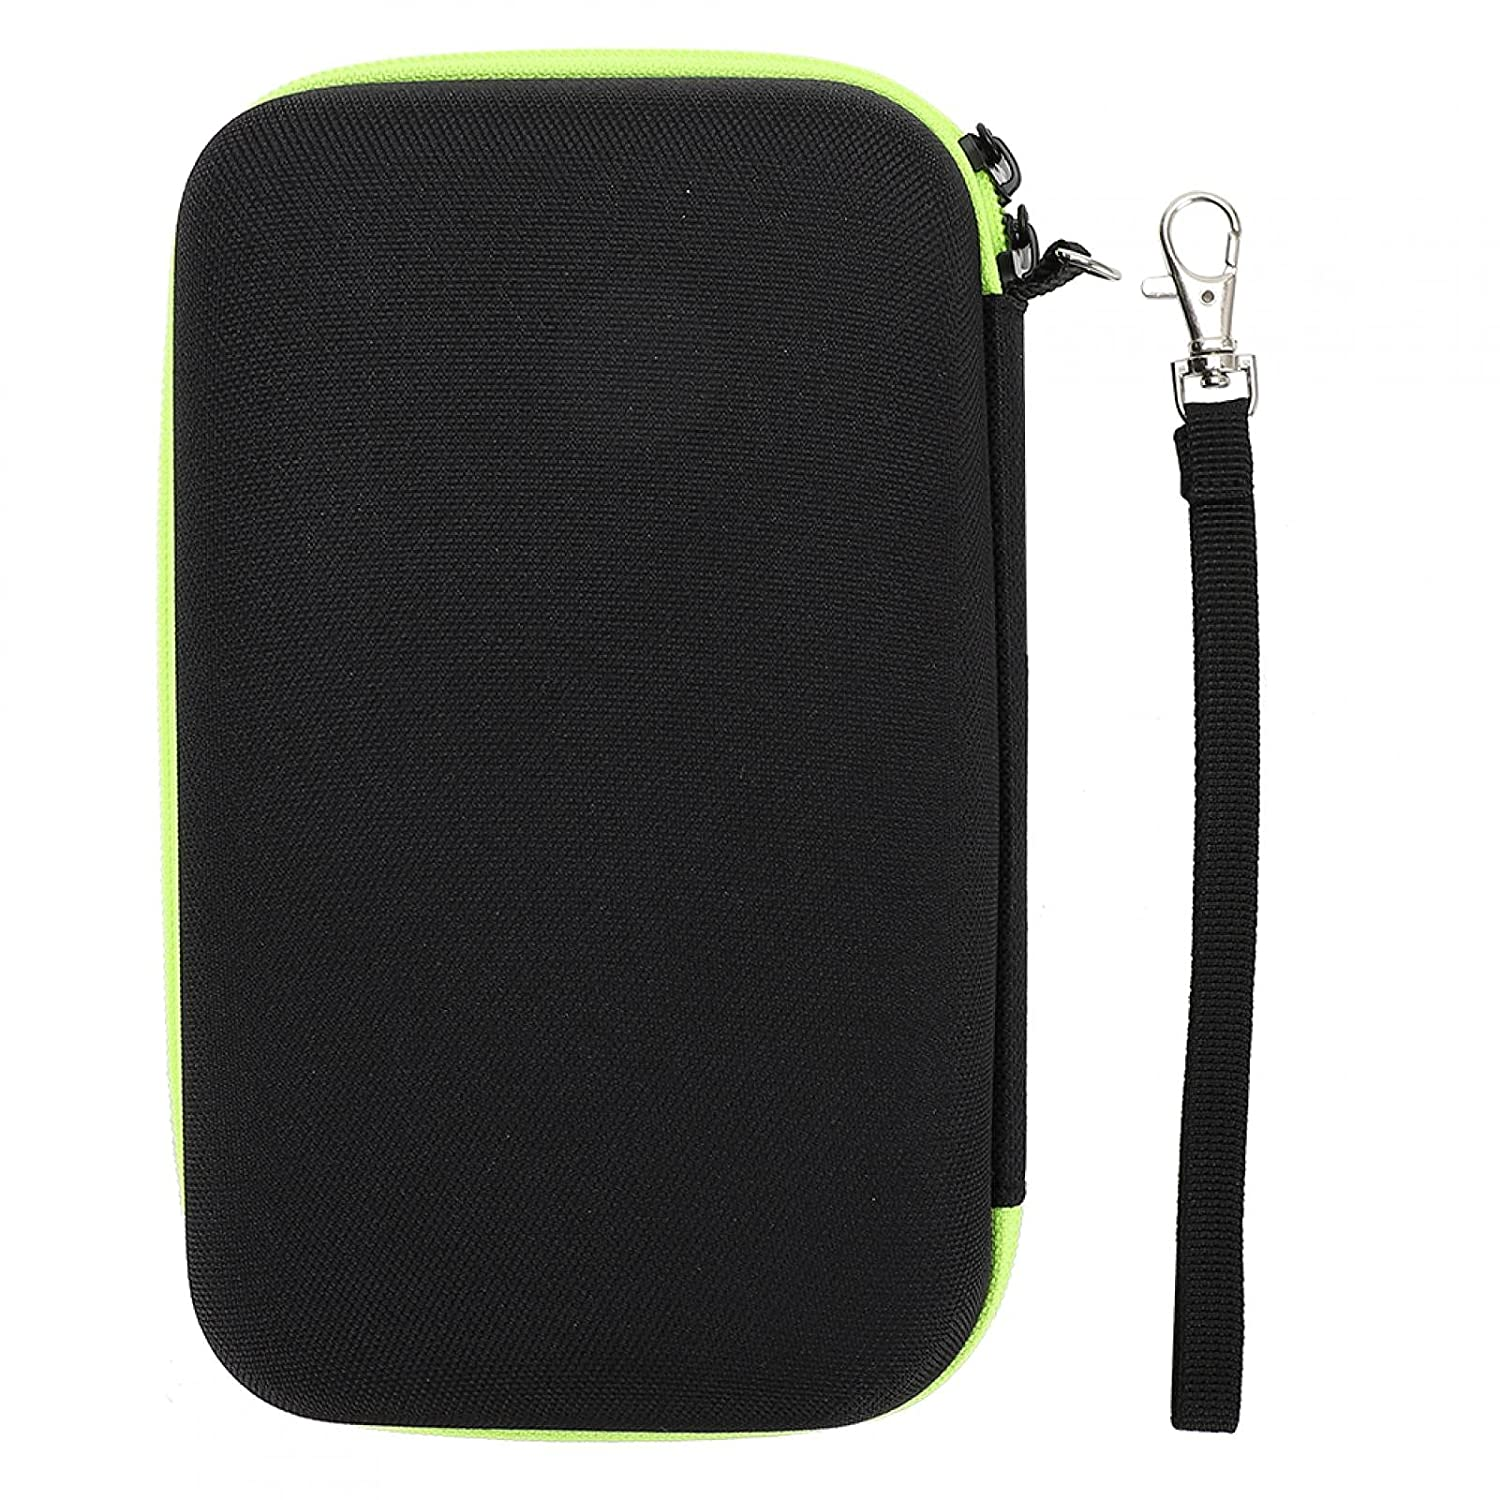 Yinke Hard Storage Popularity Bag Portable Case Lanyard with Credence Protect Travel